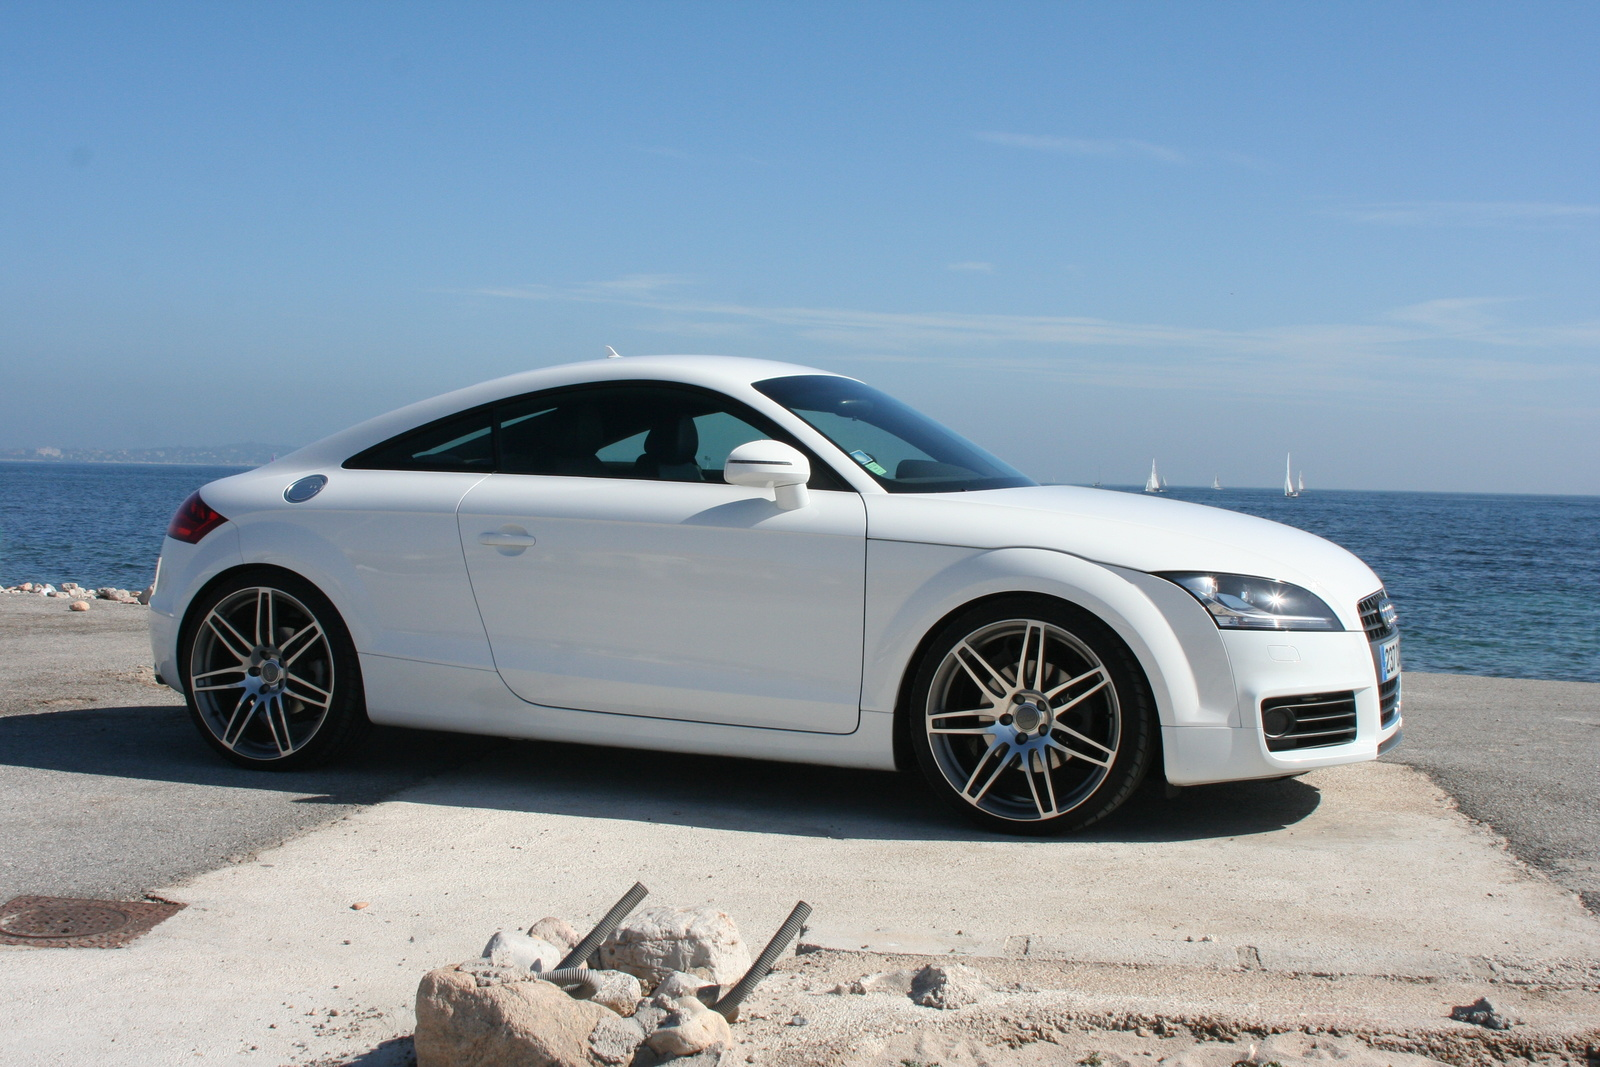 2008 Audi Tt Information And Photos Momentcar Car Exhaust Diagram The Is From Subaru 11